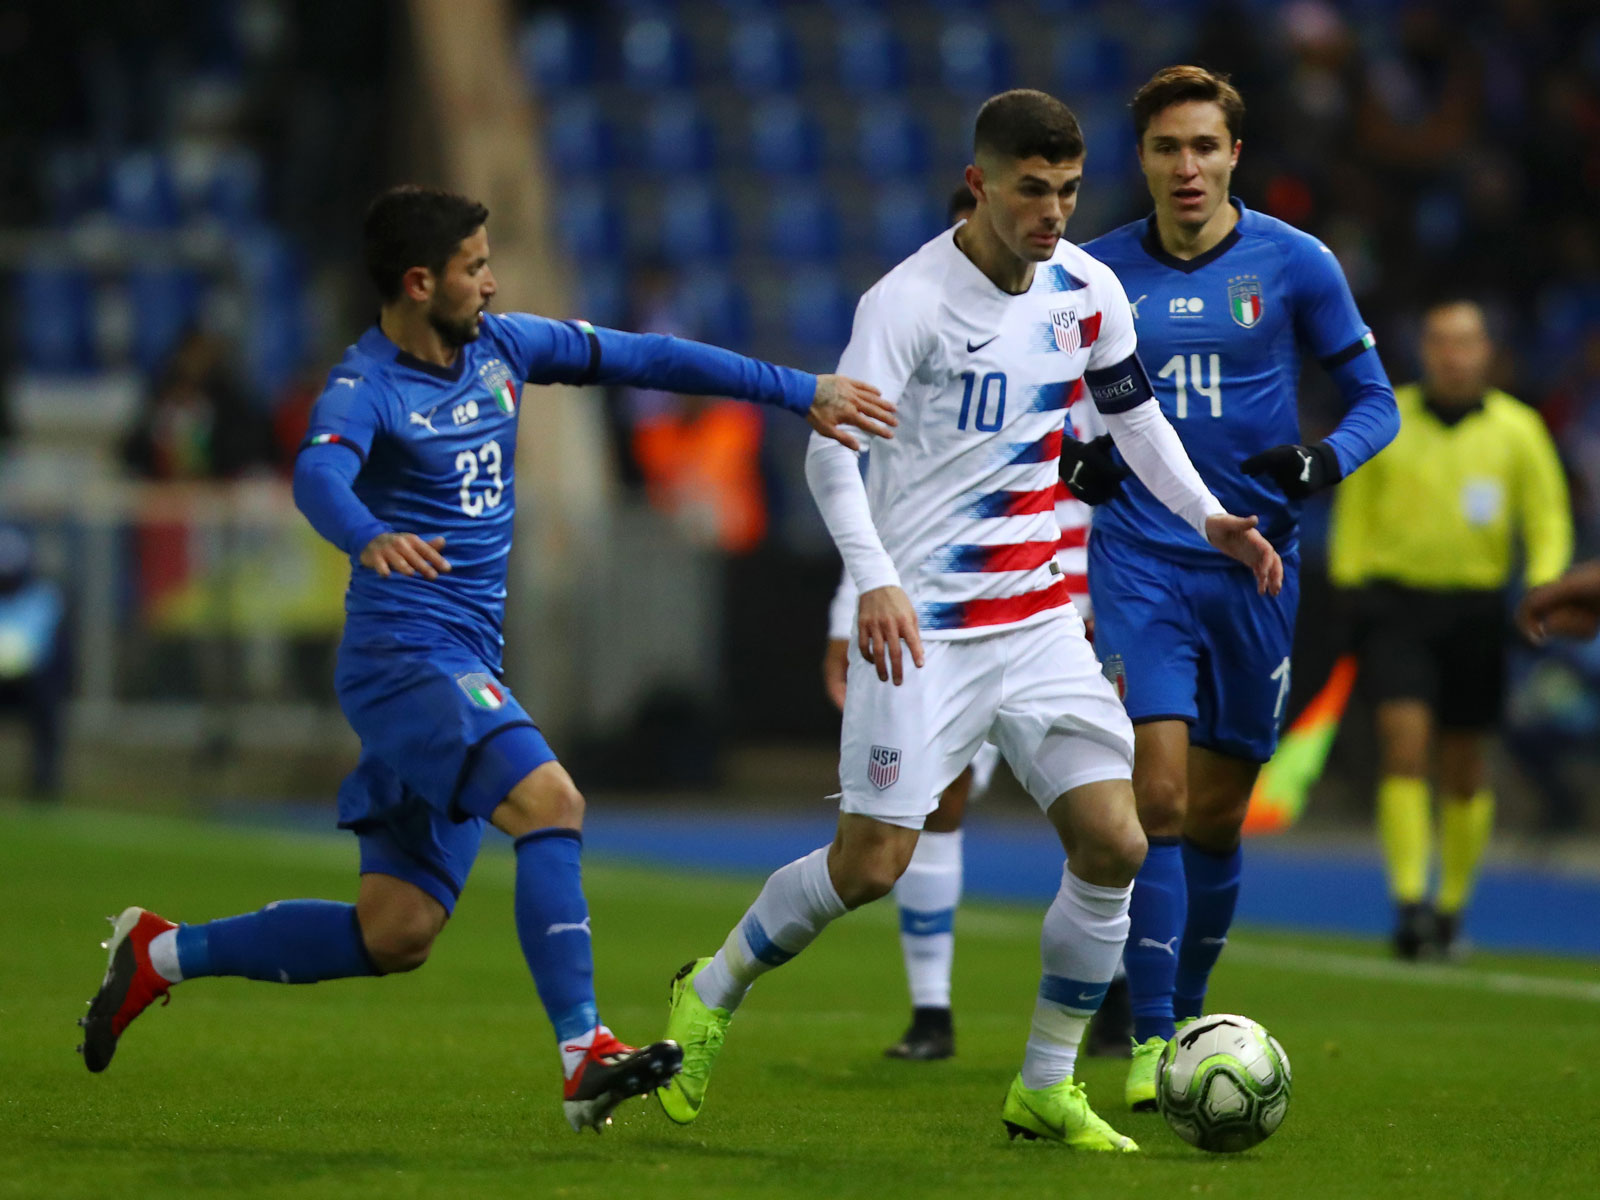 Christian Pulisic captains the USA vs. Italy